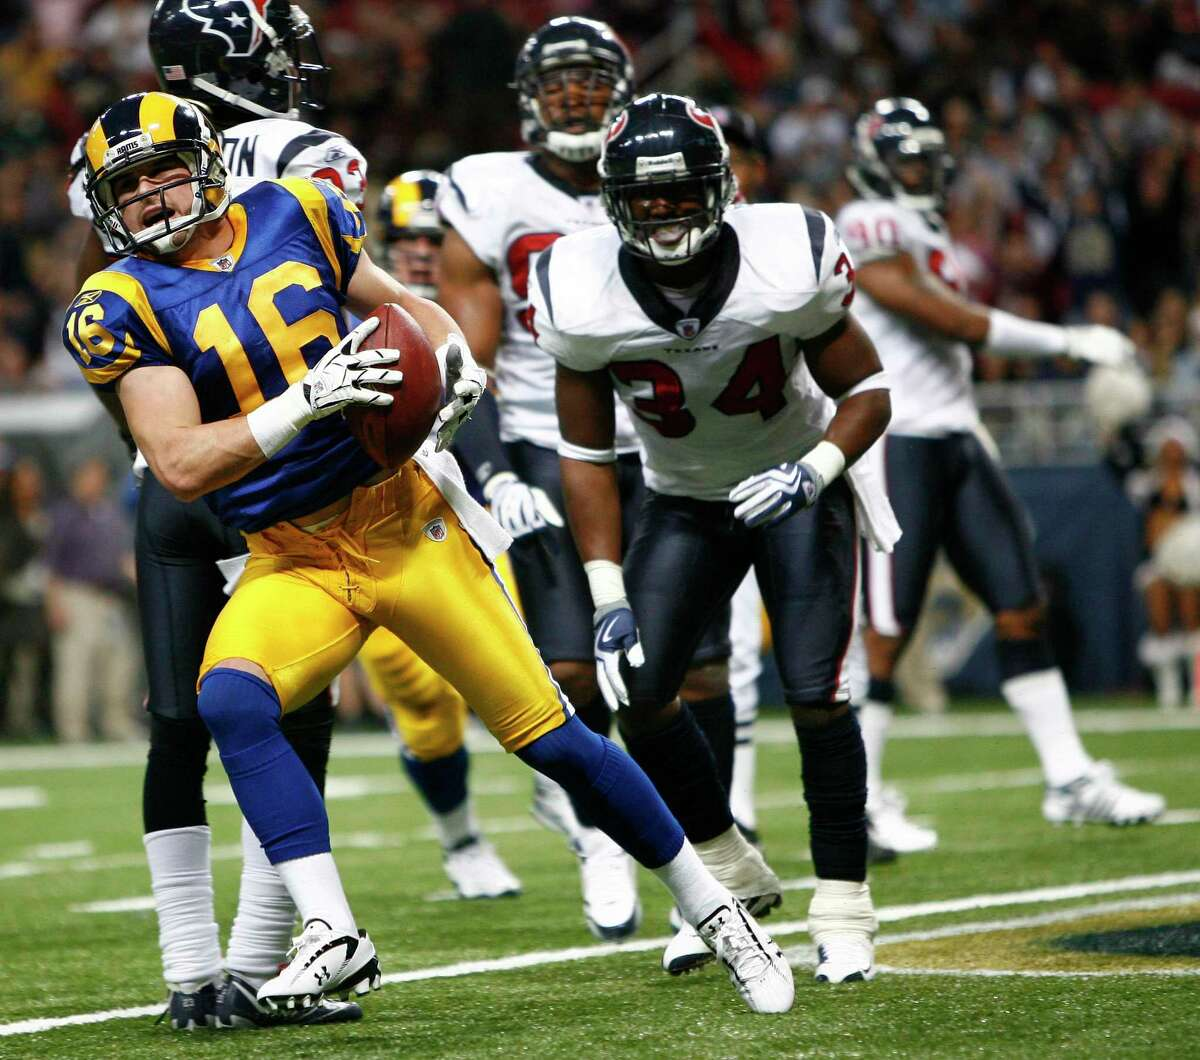 Danny Amendola scored against the Texans in 2009 when he played for the Rams.